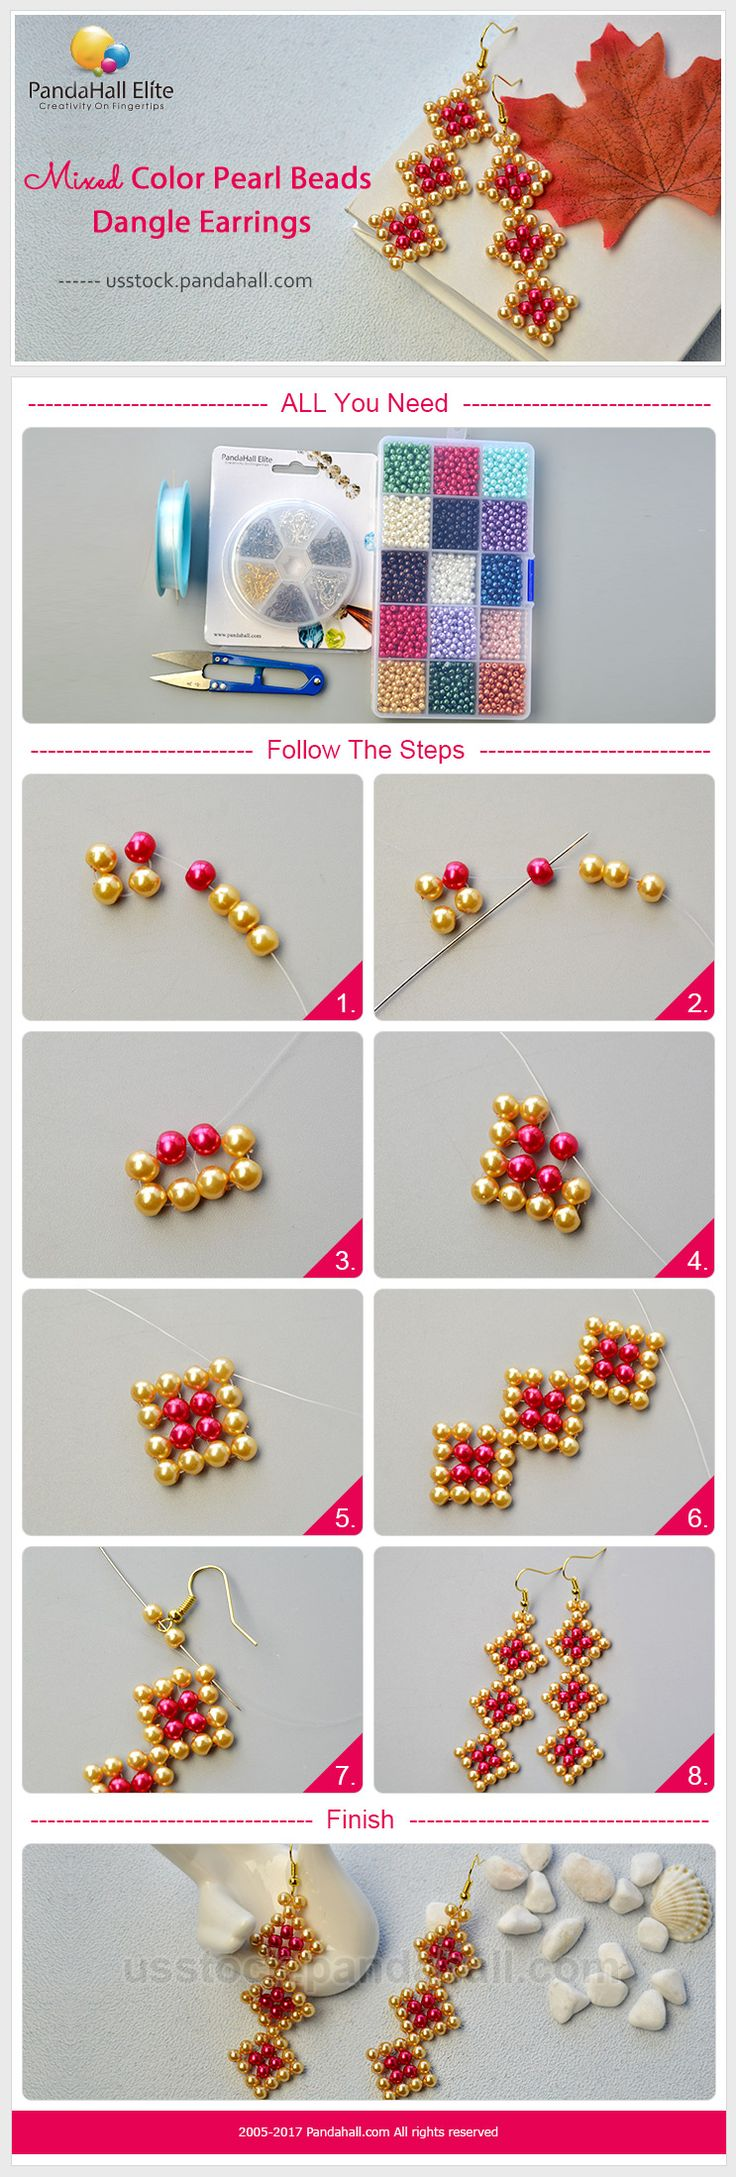 PandaHall Elite Craft Ideas: How to make golden chain bracelet with glass beads #pandahallelite #craft #bracelet #glassbeads #handmadebracelet